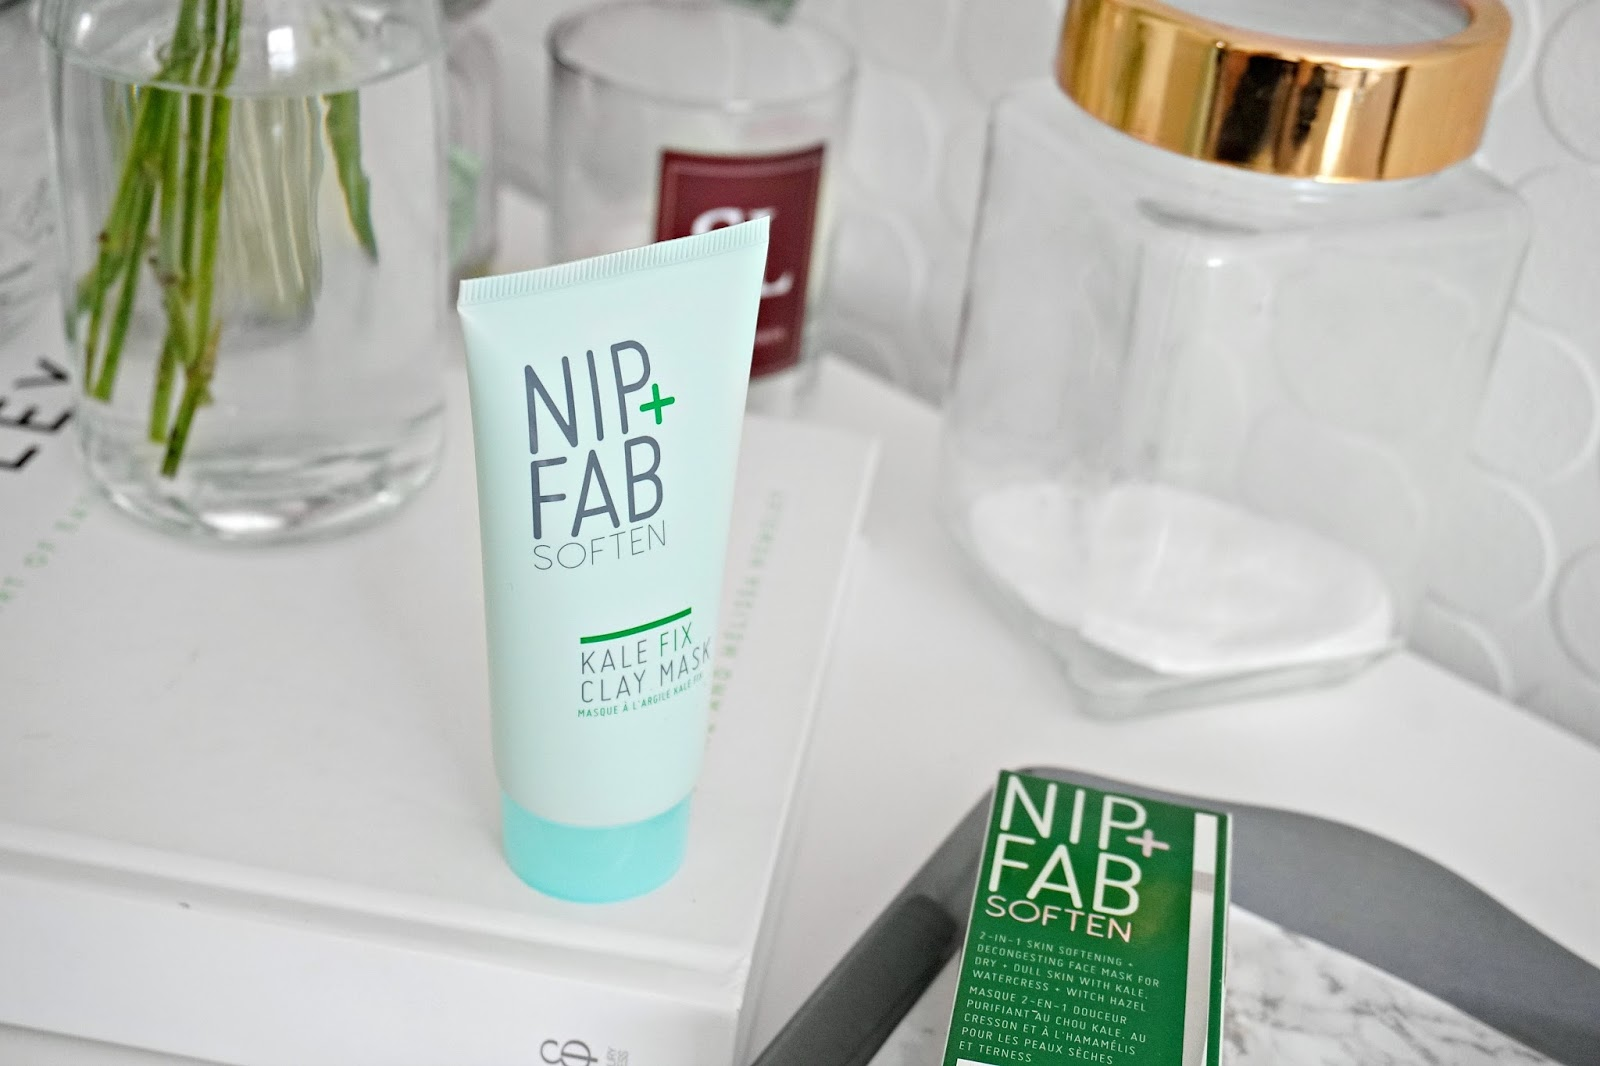 Nip + Fab Kale Fix Clay Mask sold at Boots and Superdrug